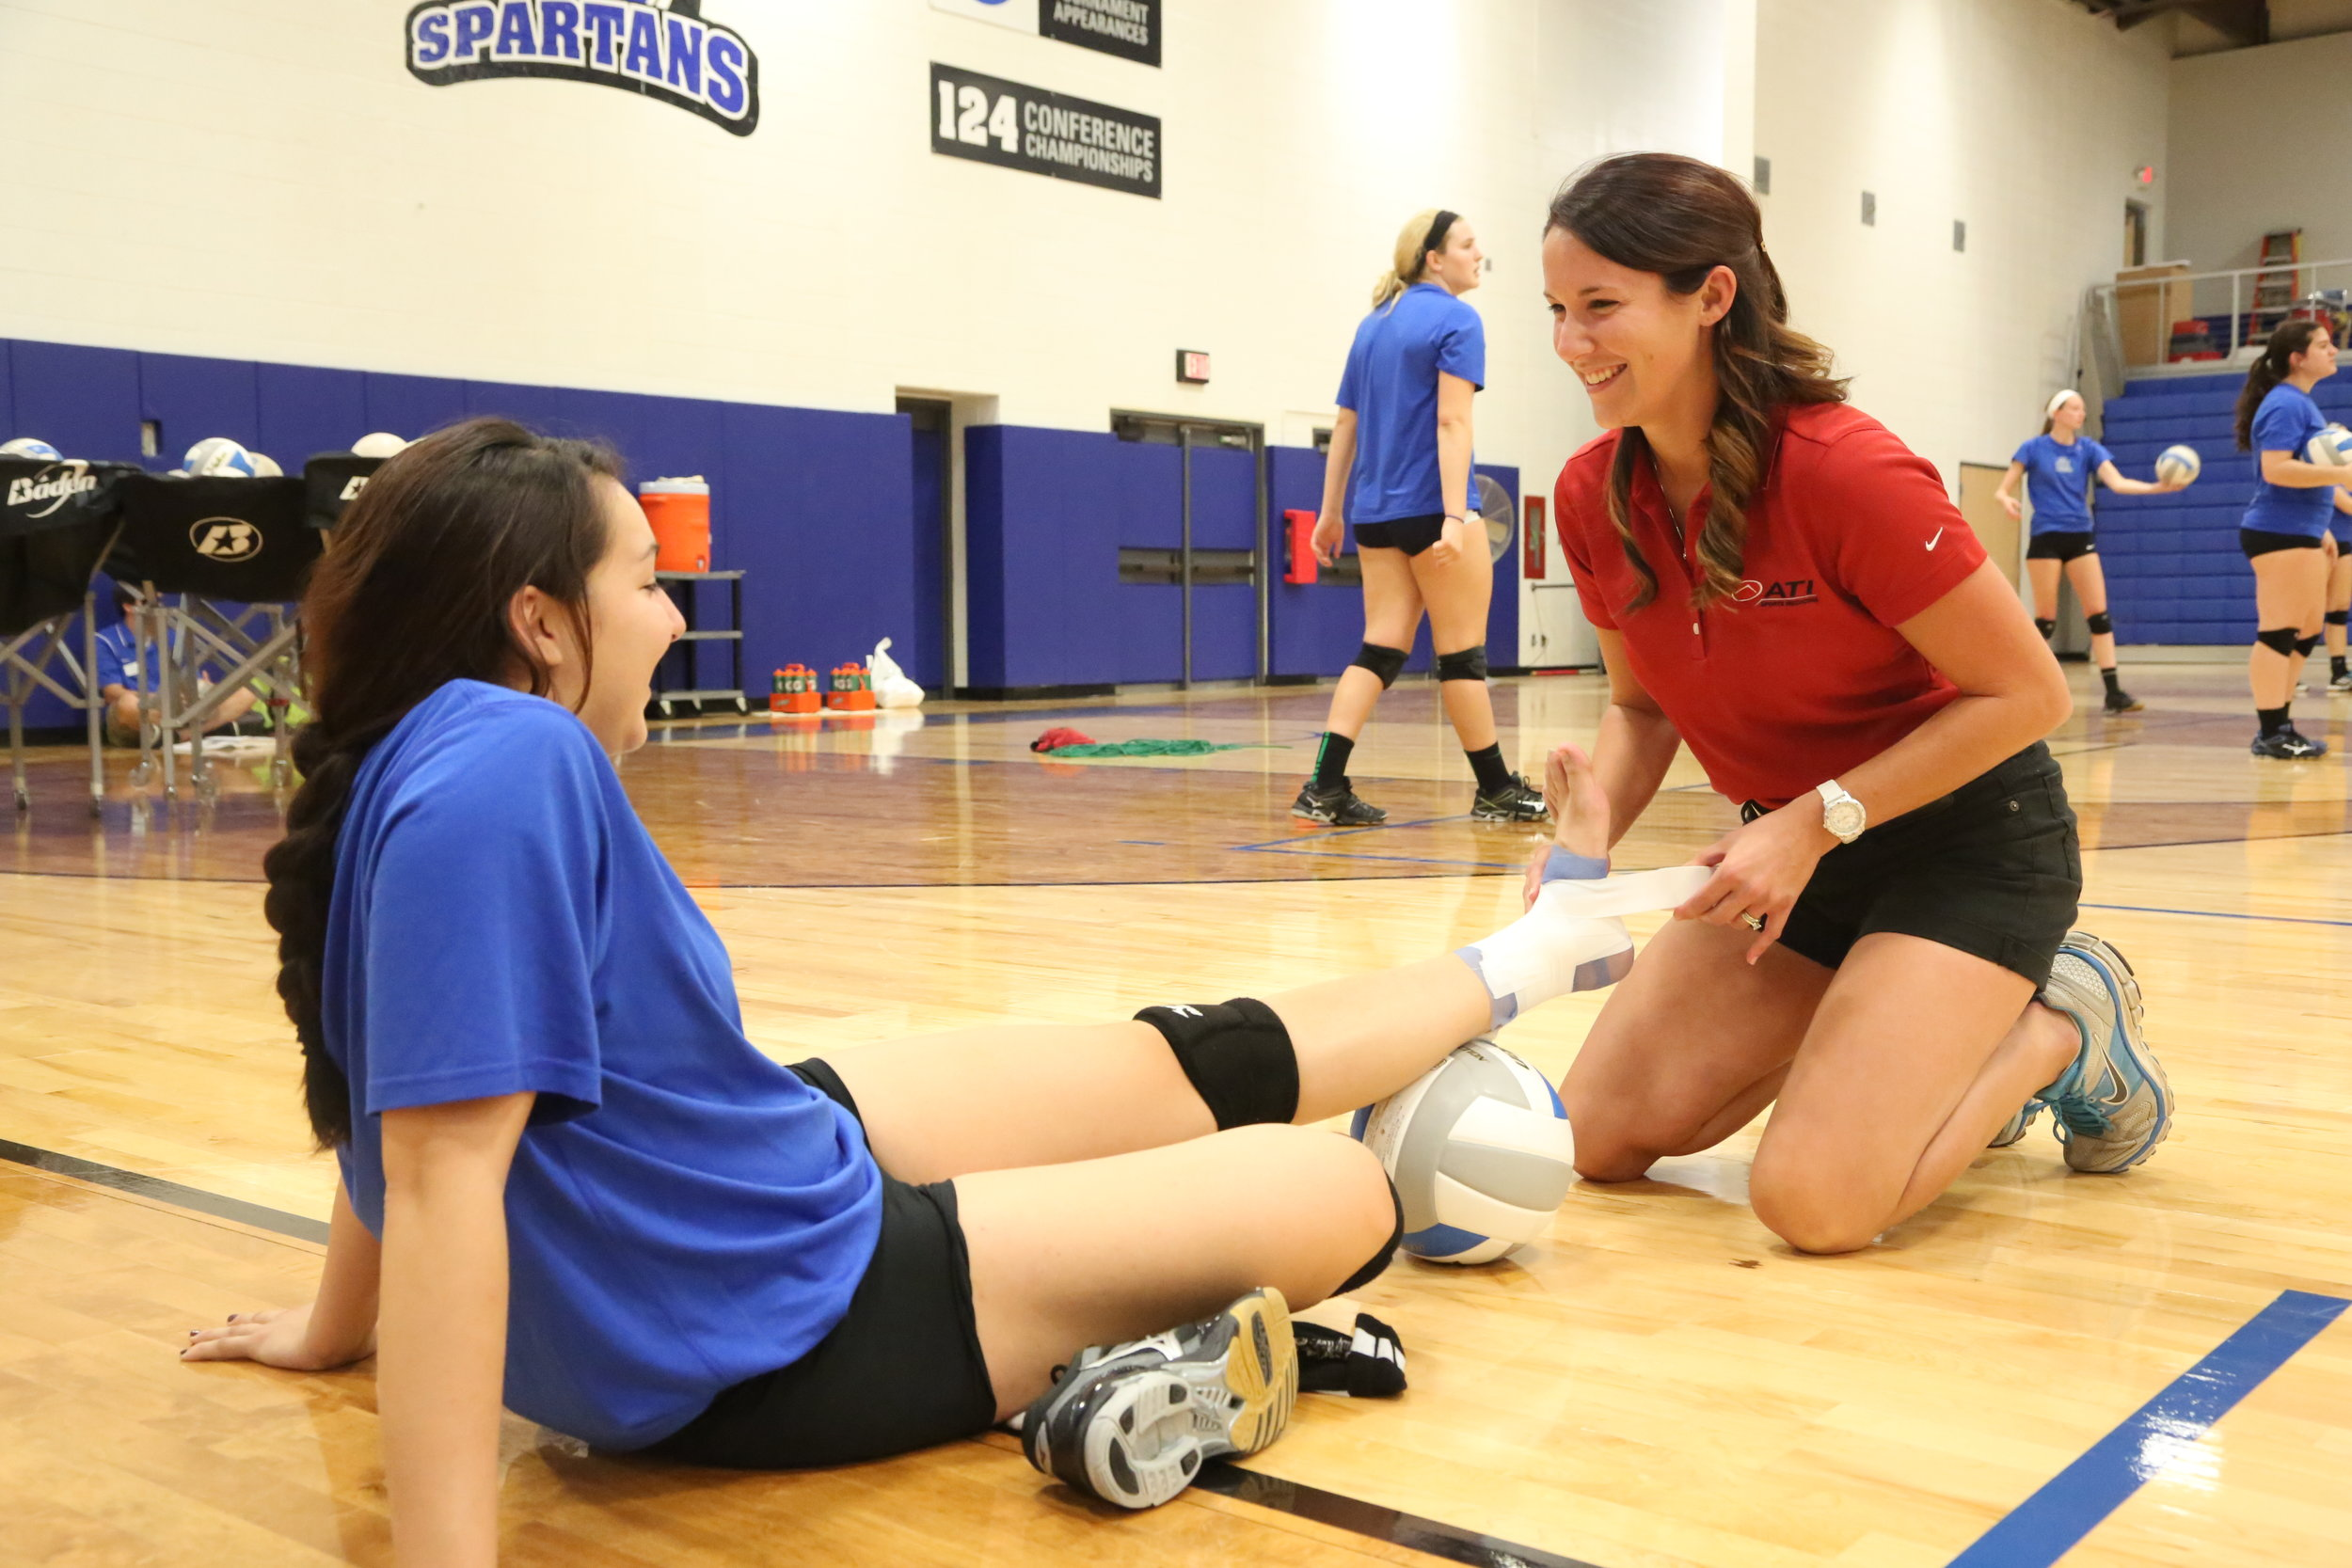 Athletic Training - Athletic training is a field filled with many sidelined athletes. Perhaps when you were injured your school athletic trainer was the first to help? Maybe you're interested in the medical field? Athletic trainers (ATs) are highly qualified, multi-skilled health care professionals who collaborate with physicians to provide preventative services, emergency care, clinical diagnosis, therapeutic intervention and rehabilitation of injuries and medical conditions. Have you ever wondered how you can be a part of the medical field and help care for other athletes; all while still being a part of the sports world? Athletic training is great way to do all that! Experience the thrill of being at the games while helping others.